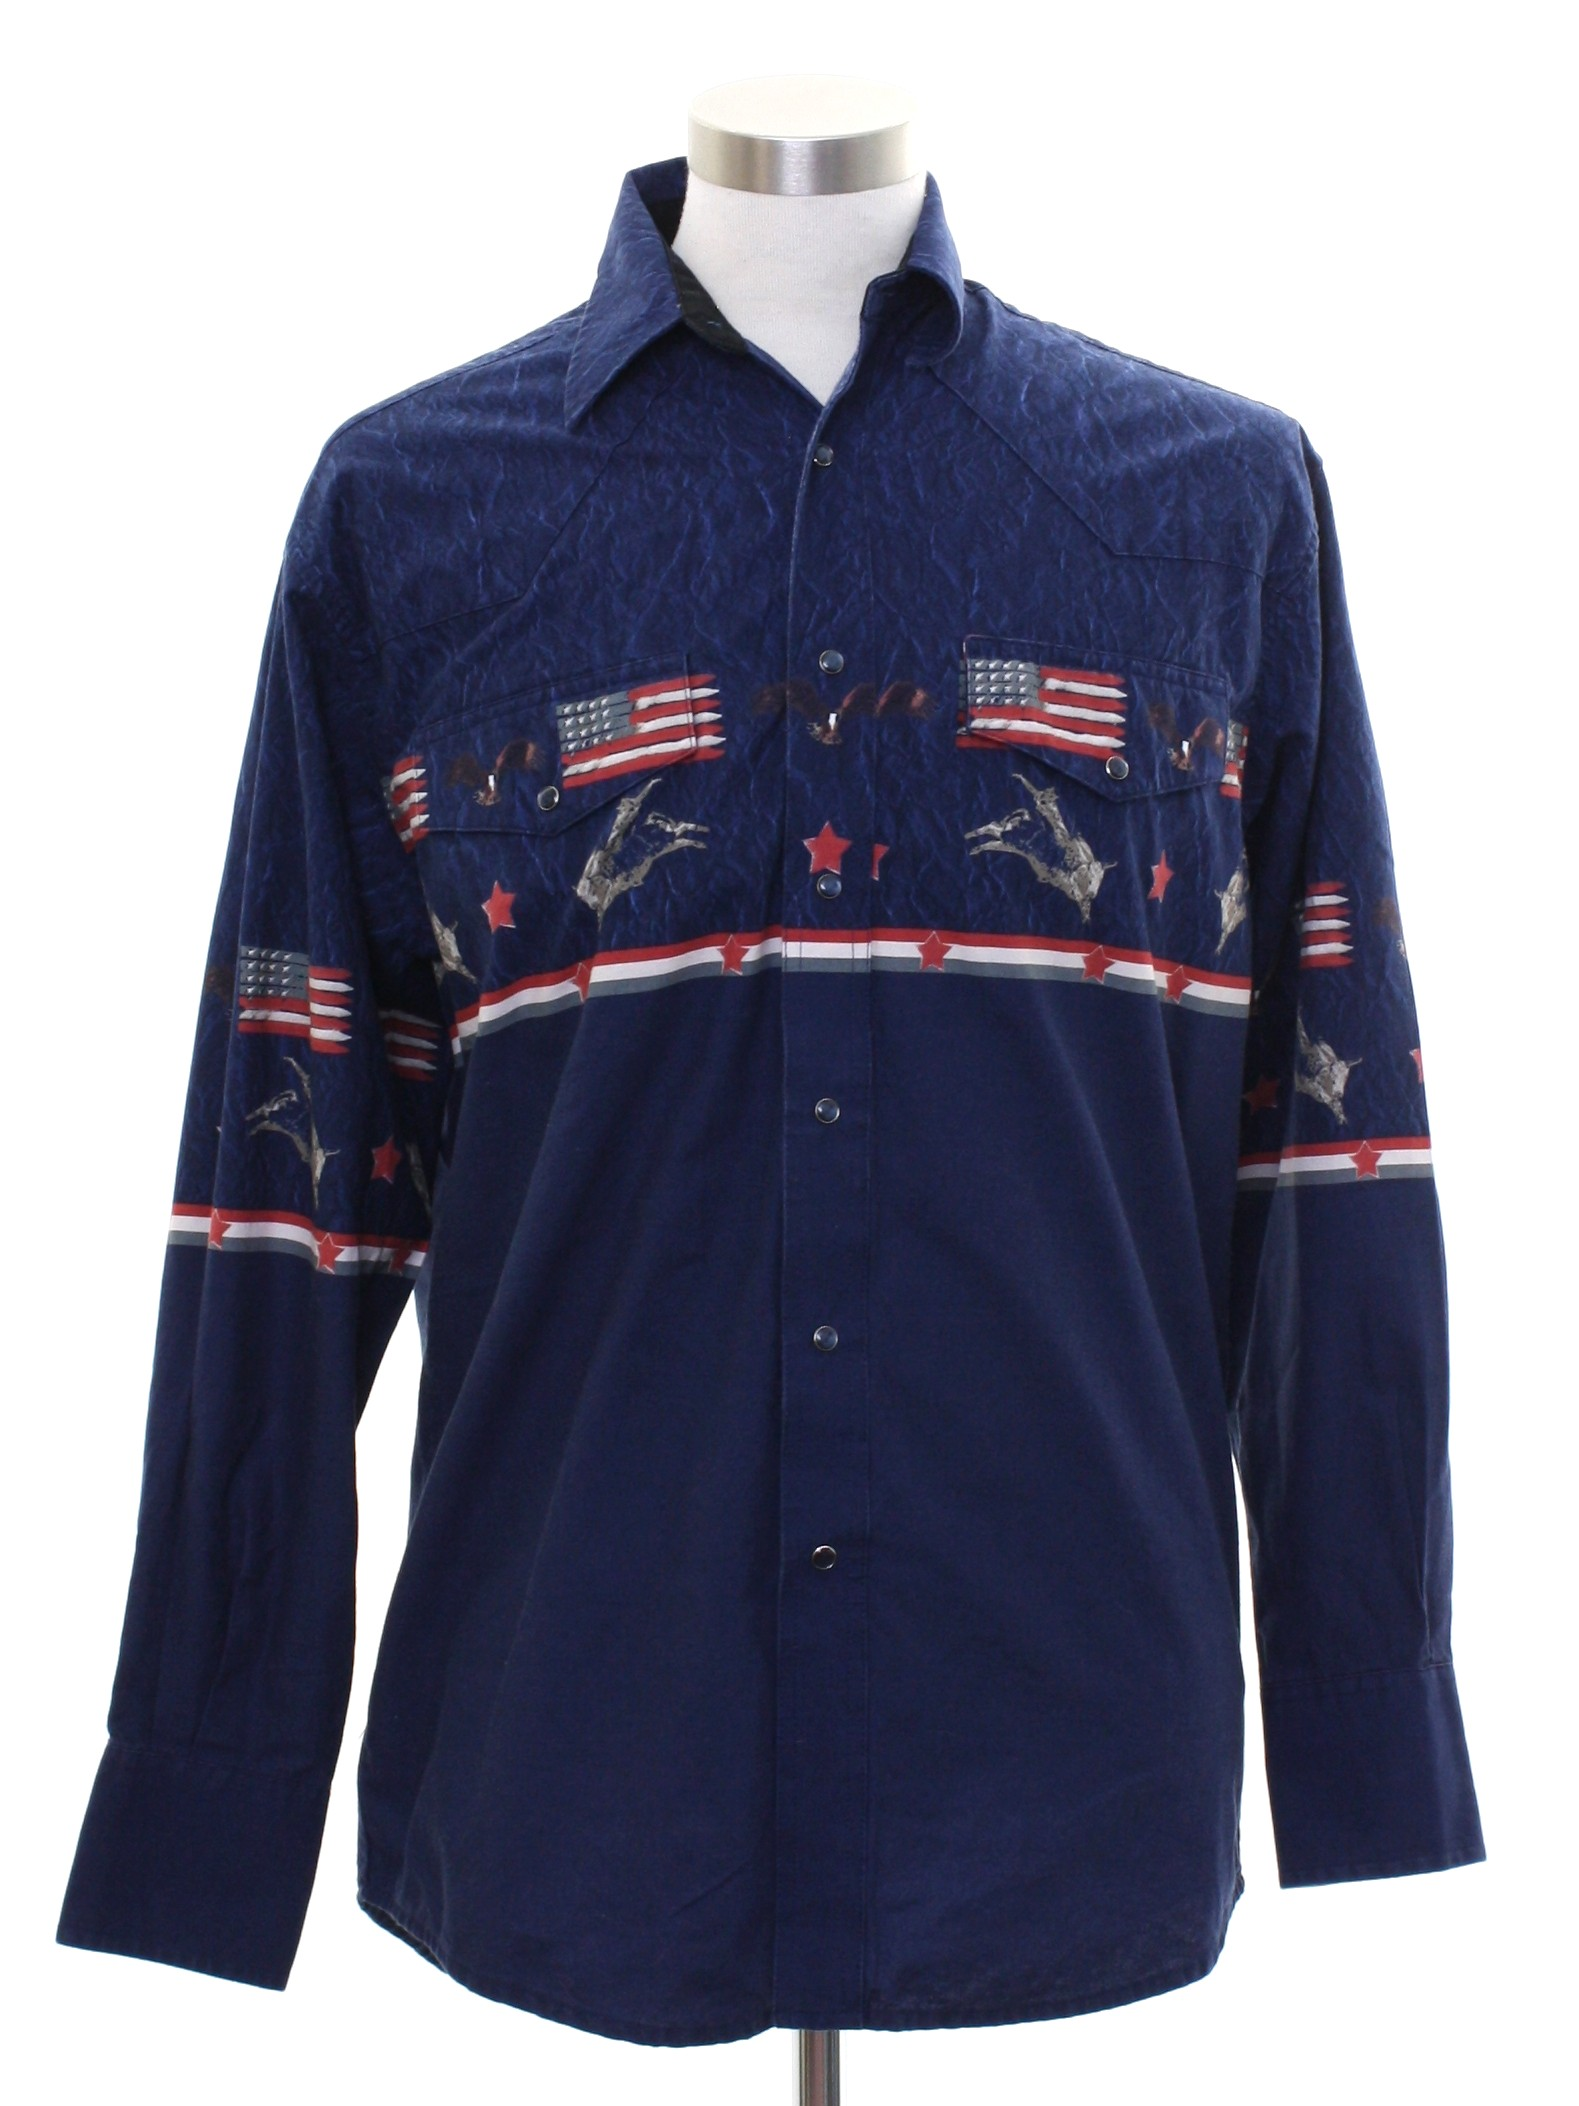 d67e76f1 Western Shirt: 90s -Wrangler- Mens midnight blue background cotton  longsleeve western shirt. (Made in Bangladesh - Go America, eh?). Snap  front closure.